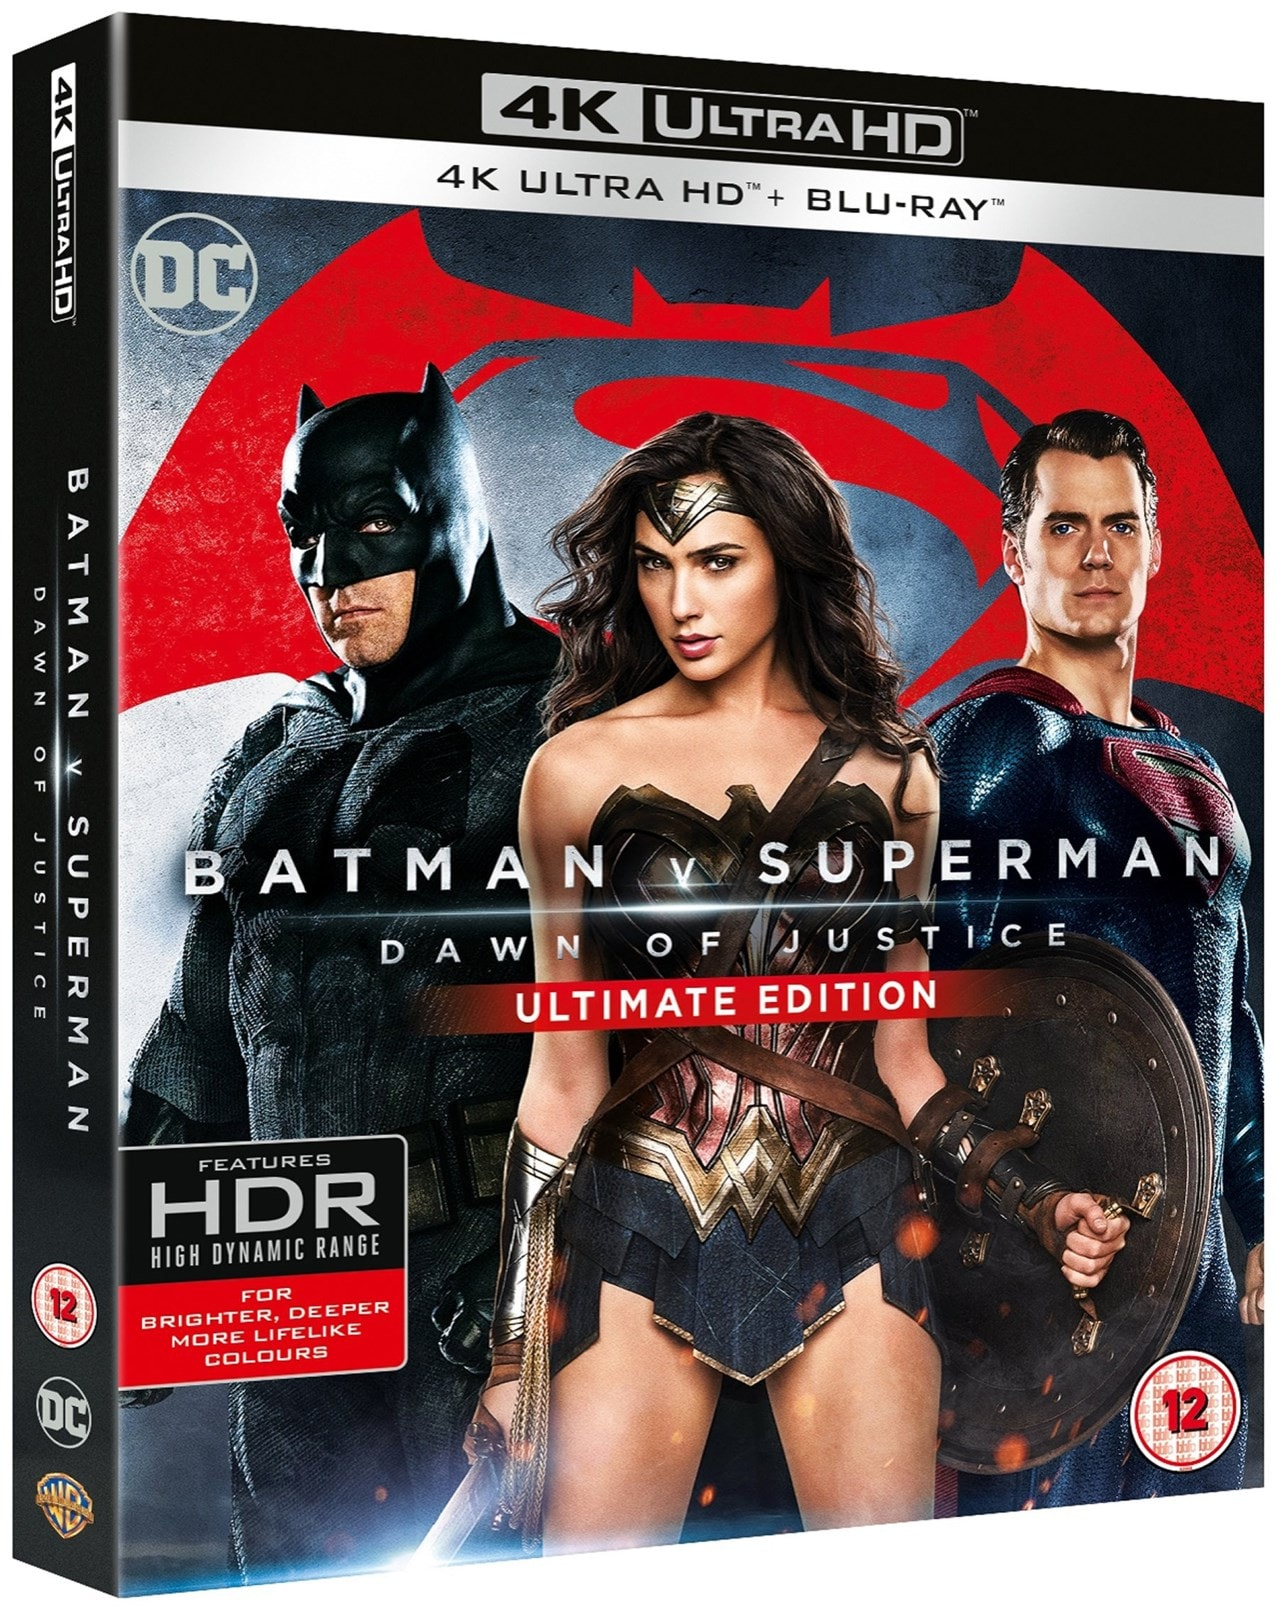 Batman V Superman - Dawn of Justice: Ultimate Edition - 2